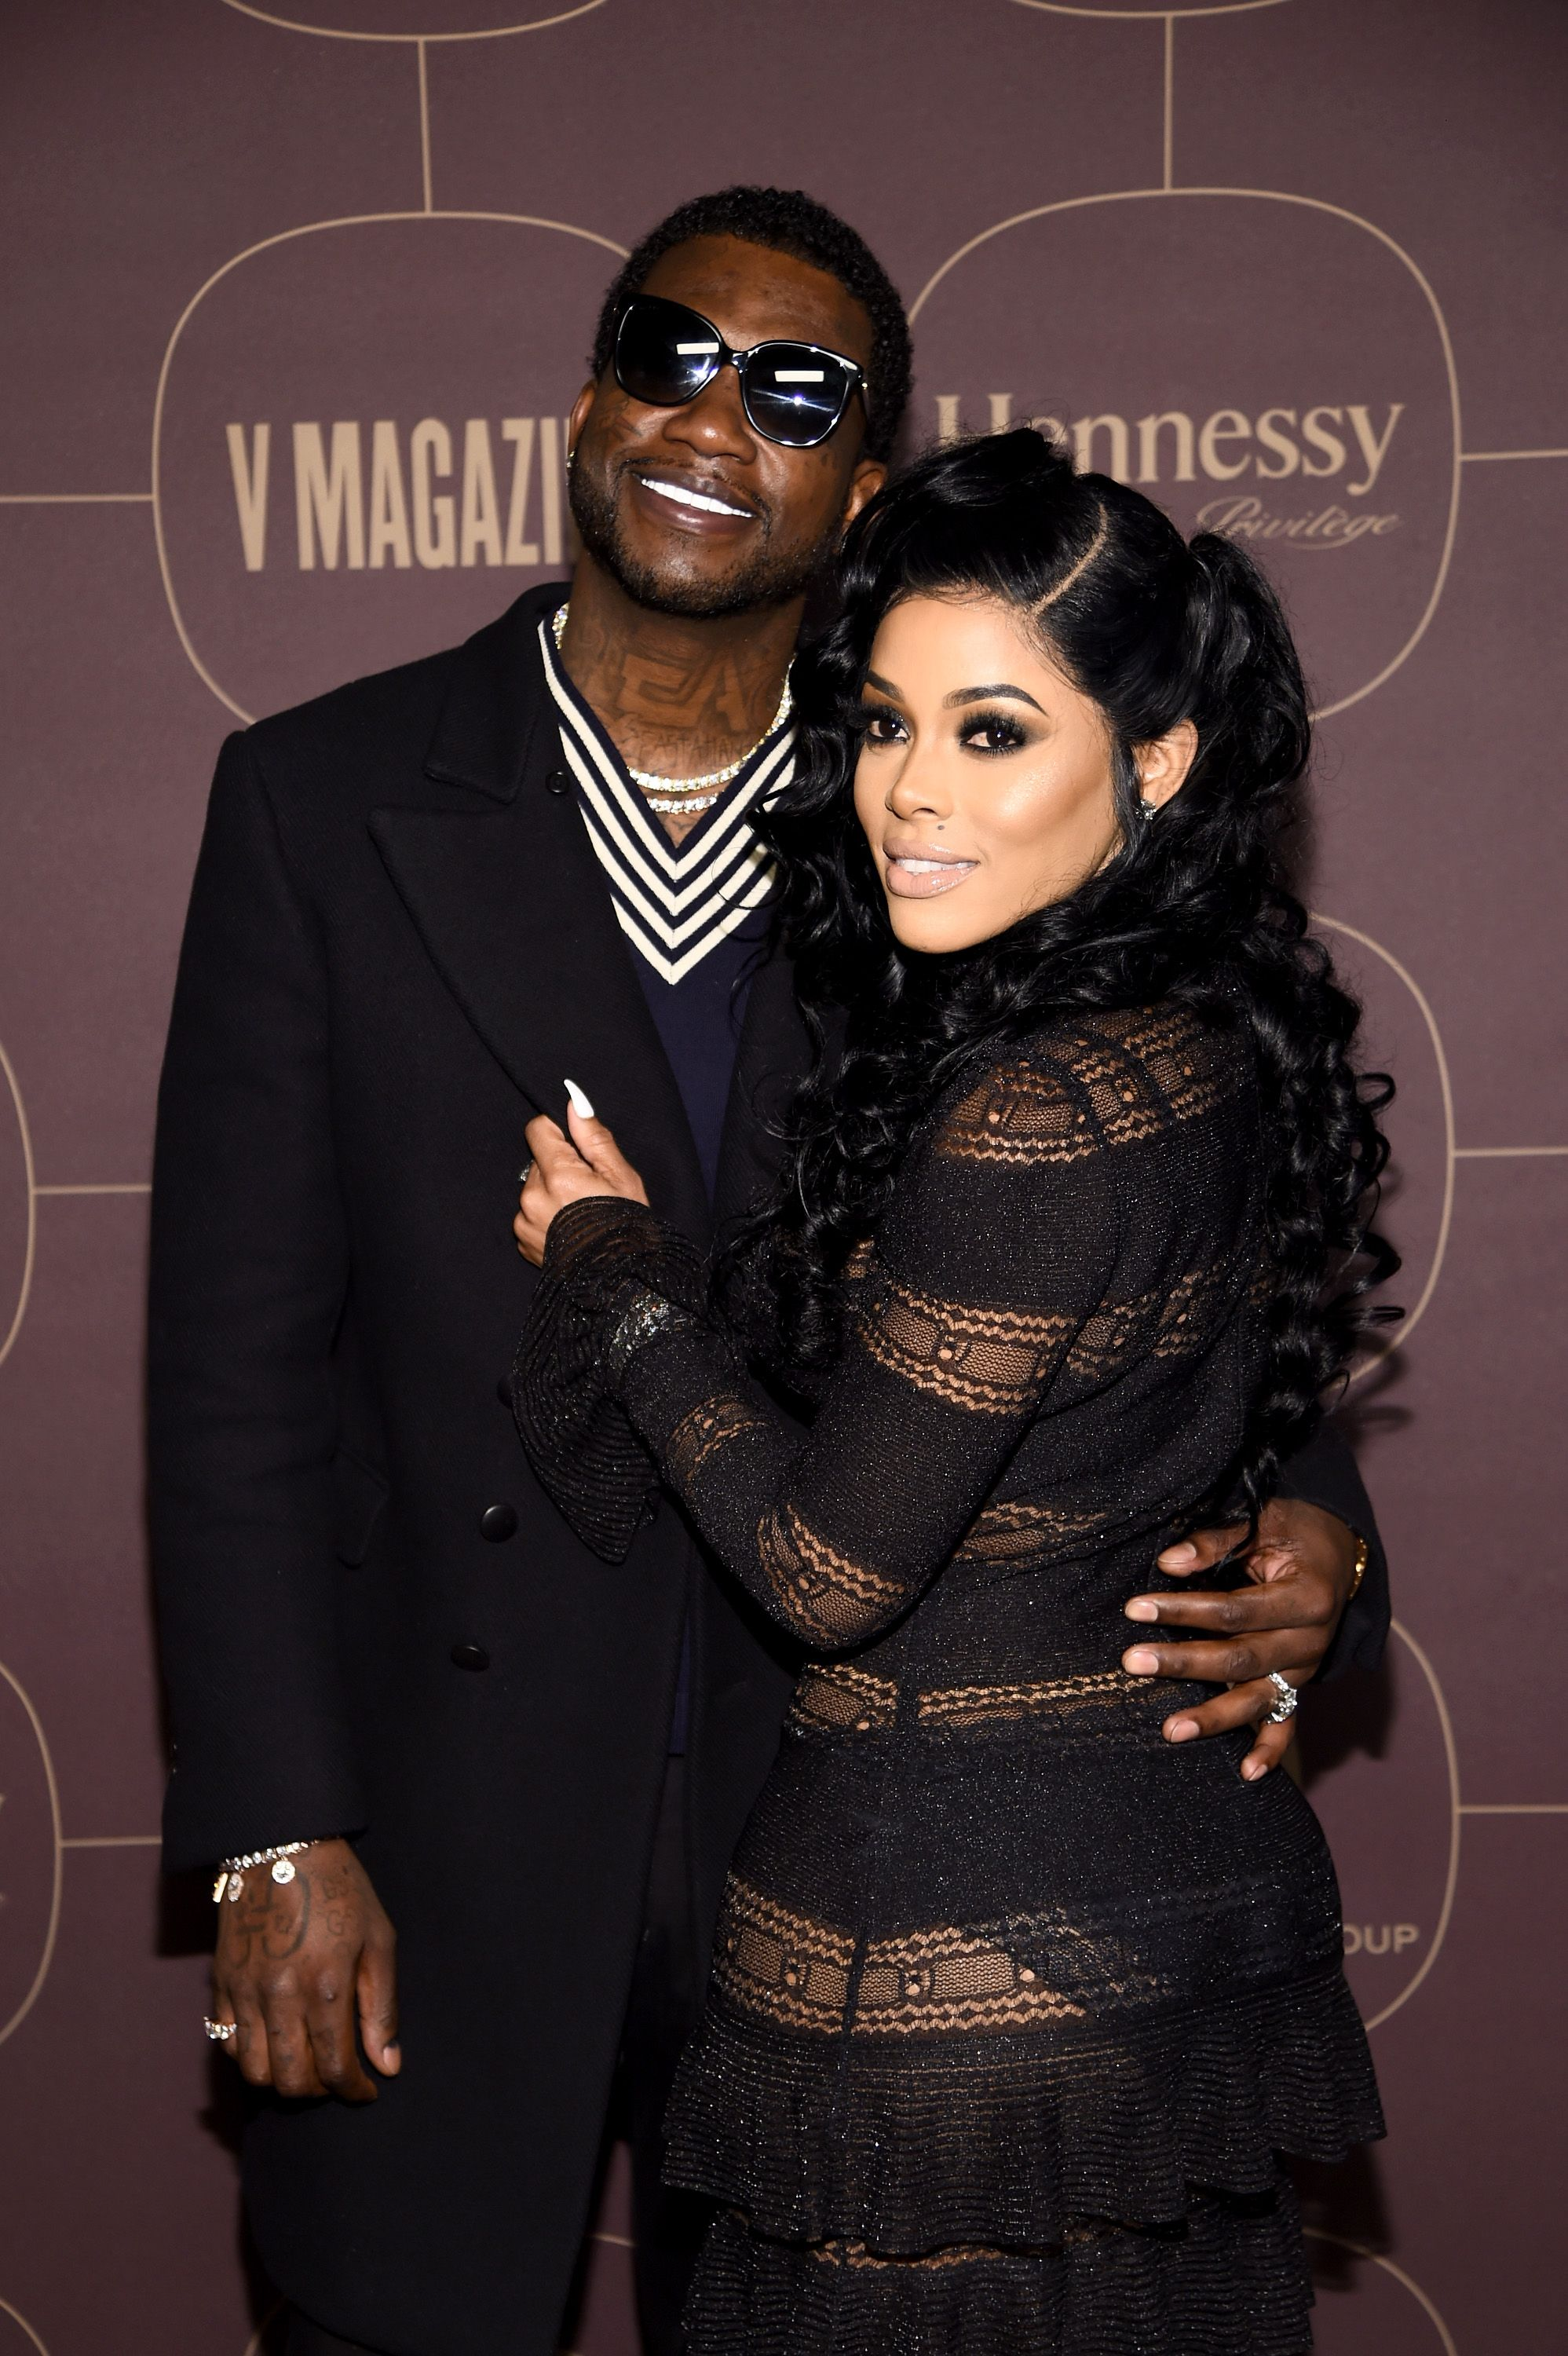 Gucci Mane and Keyshia Ka'Oir at the Warner Music Group Pre-Grammy Party on January 25, 2018 in New York.   Photo: Getty Images